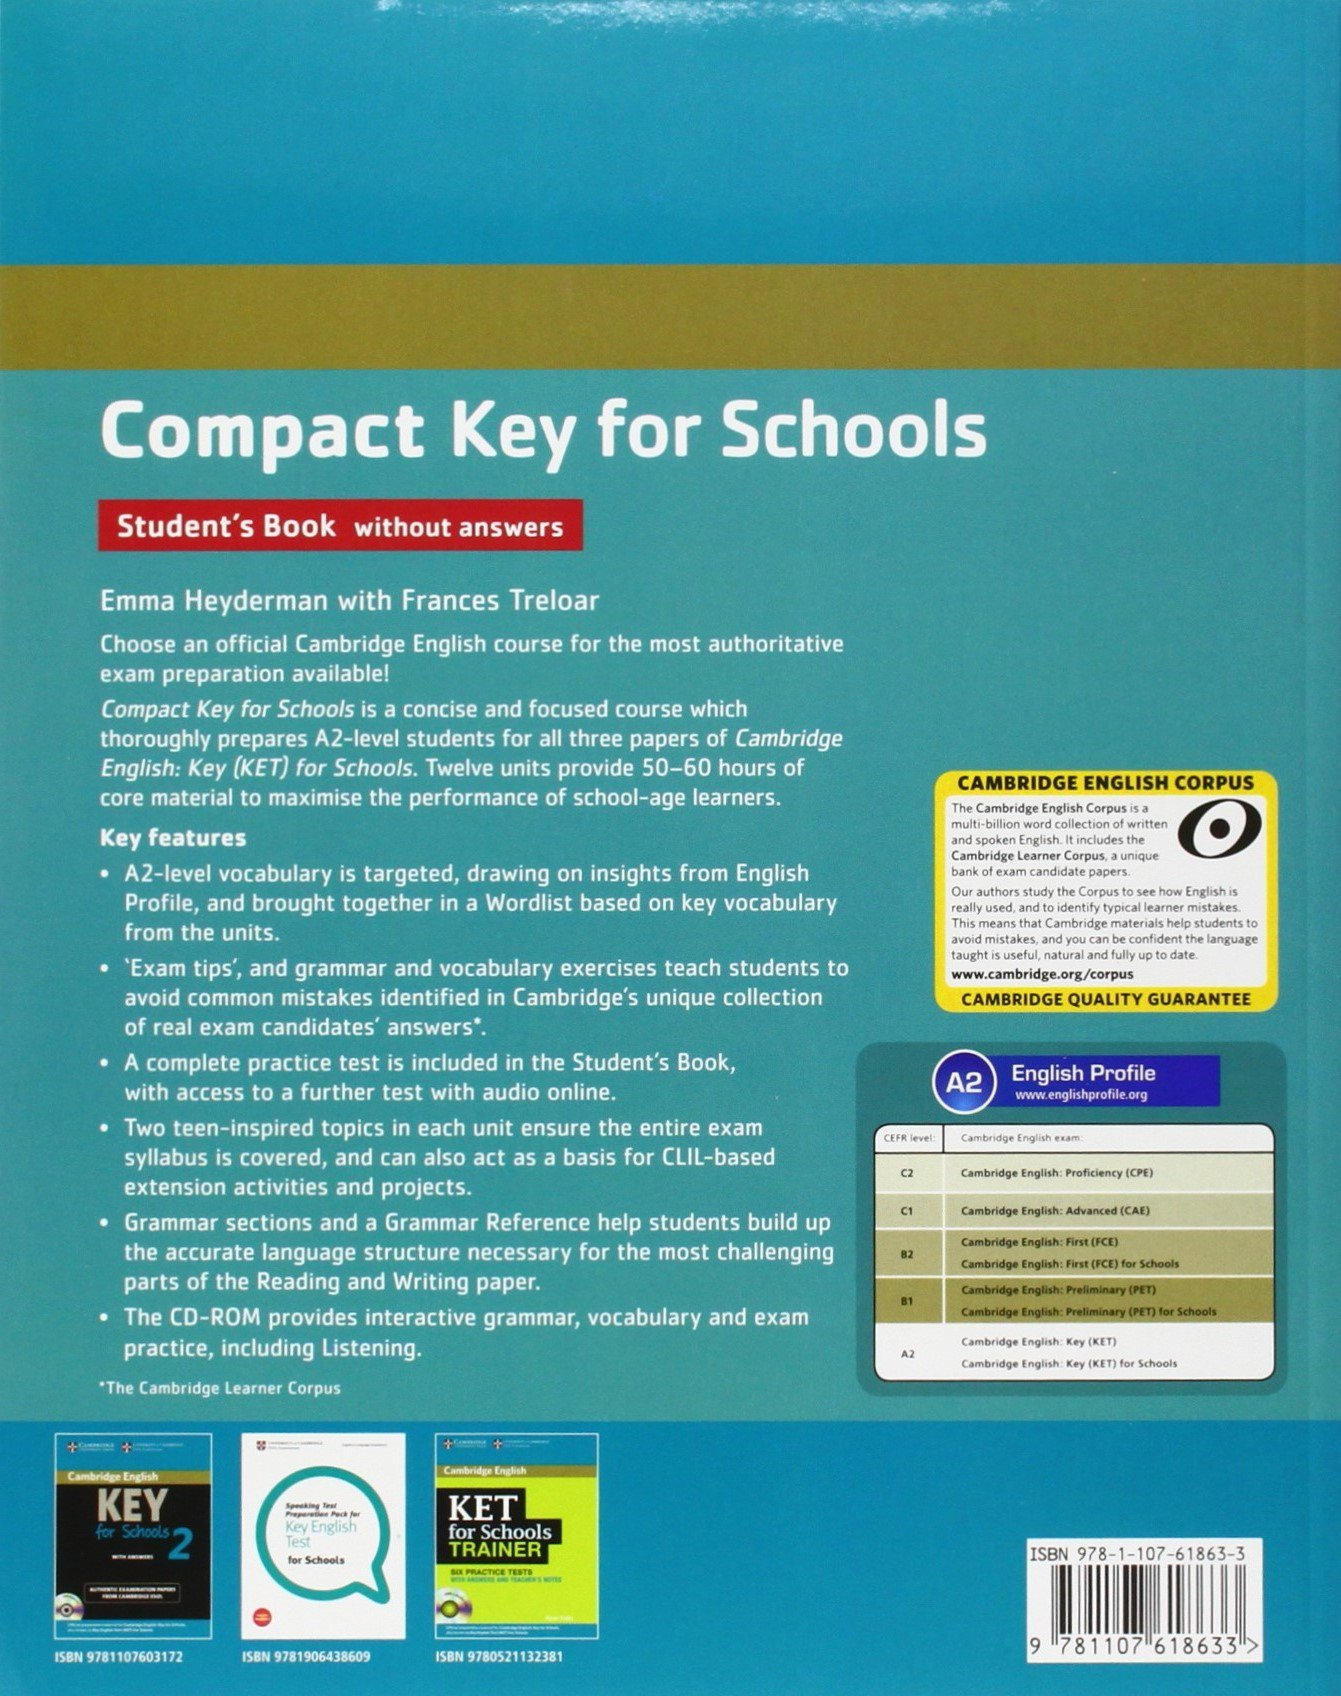 Compact Key for Schools Students Pack Students Book without Answers with CD-ROM, Workbook without Answers with Audio CD: Amazon.es: Heyderman, Emma, Treloar, Frances: Libros en idiomas extranjeros